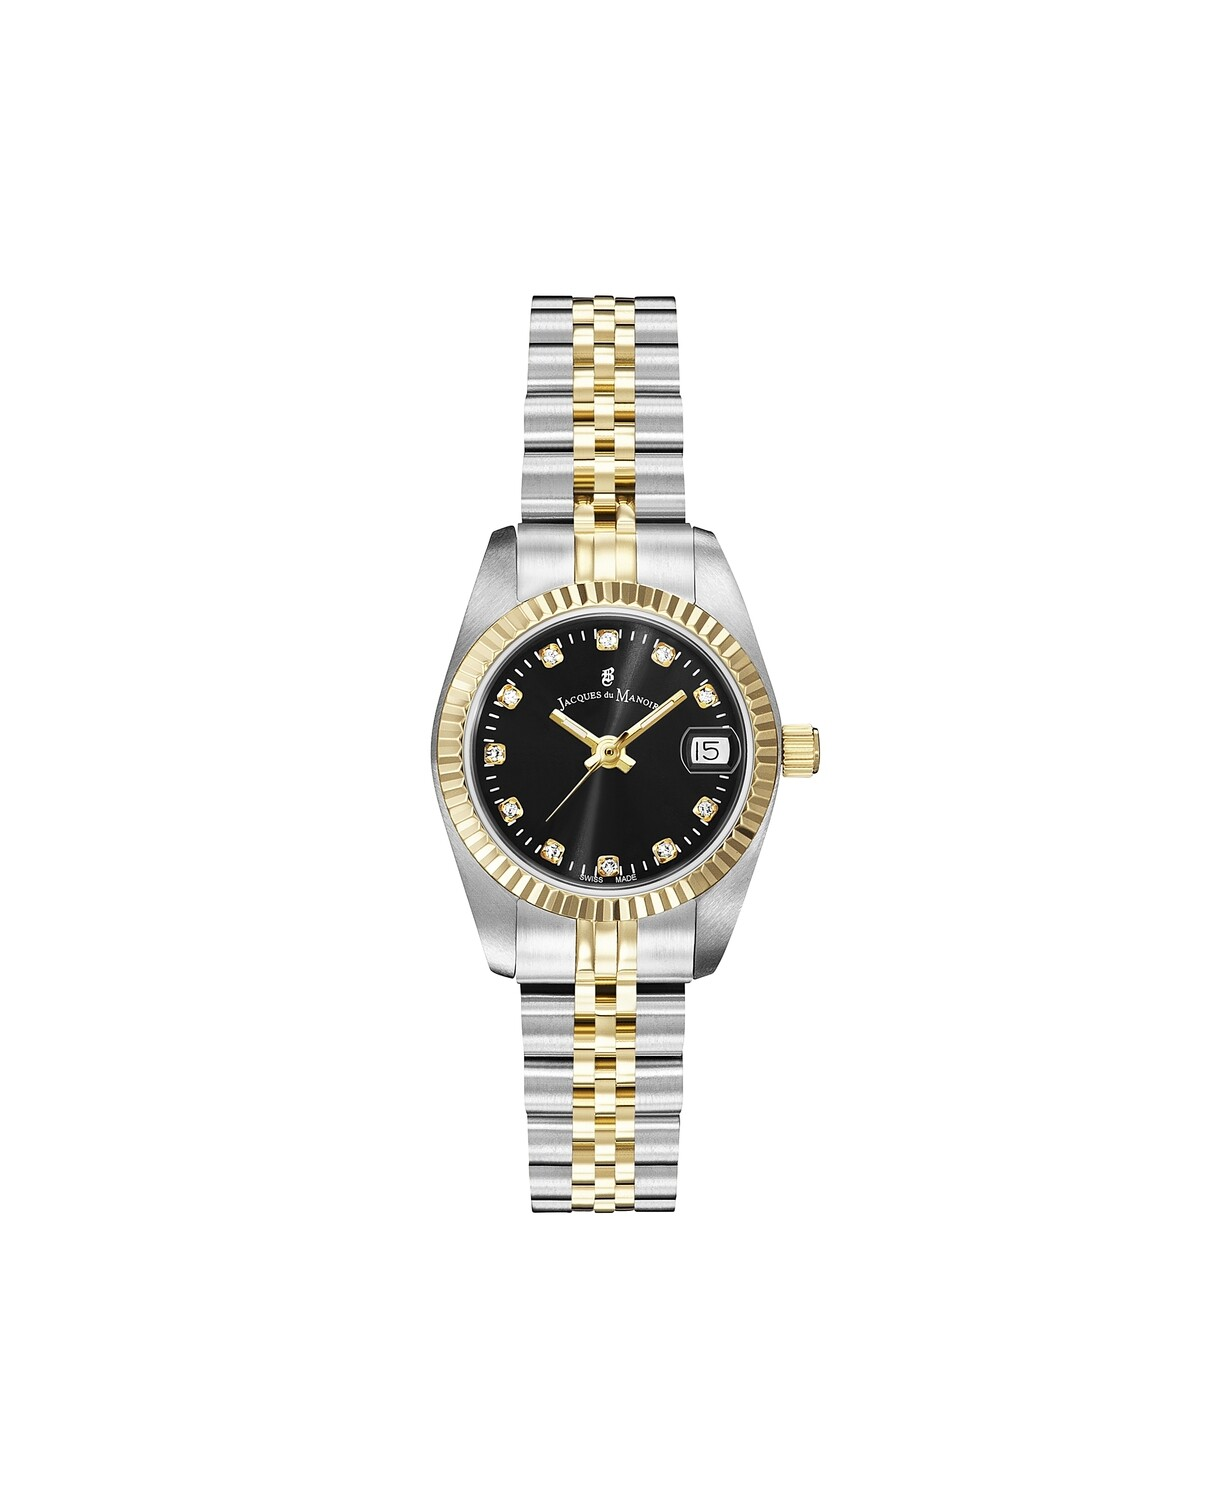 Inspiration SS IPGold Two Tone case, BLACK Dial, SS IPGold Two Tone Bracelet, 26.0 mm